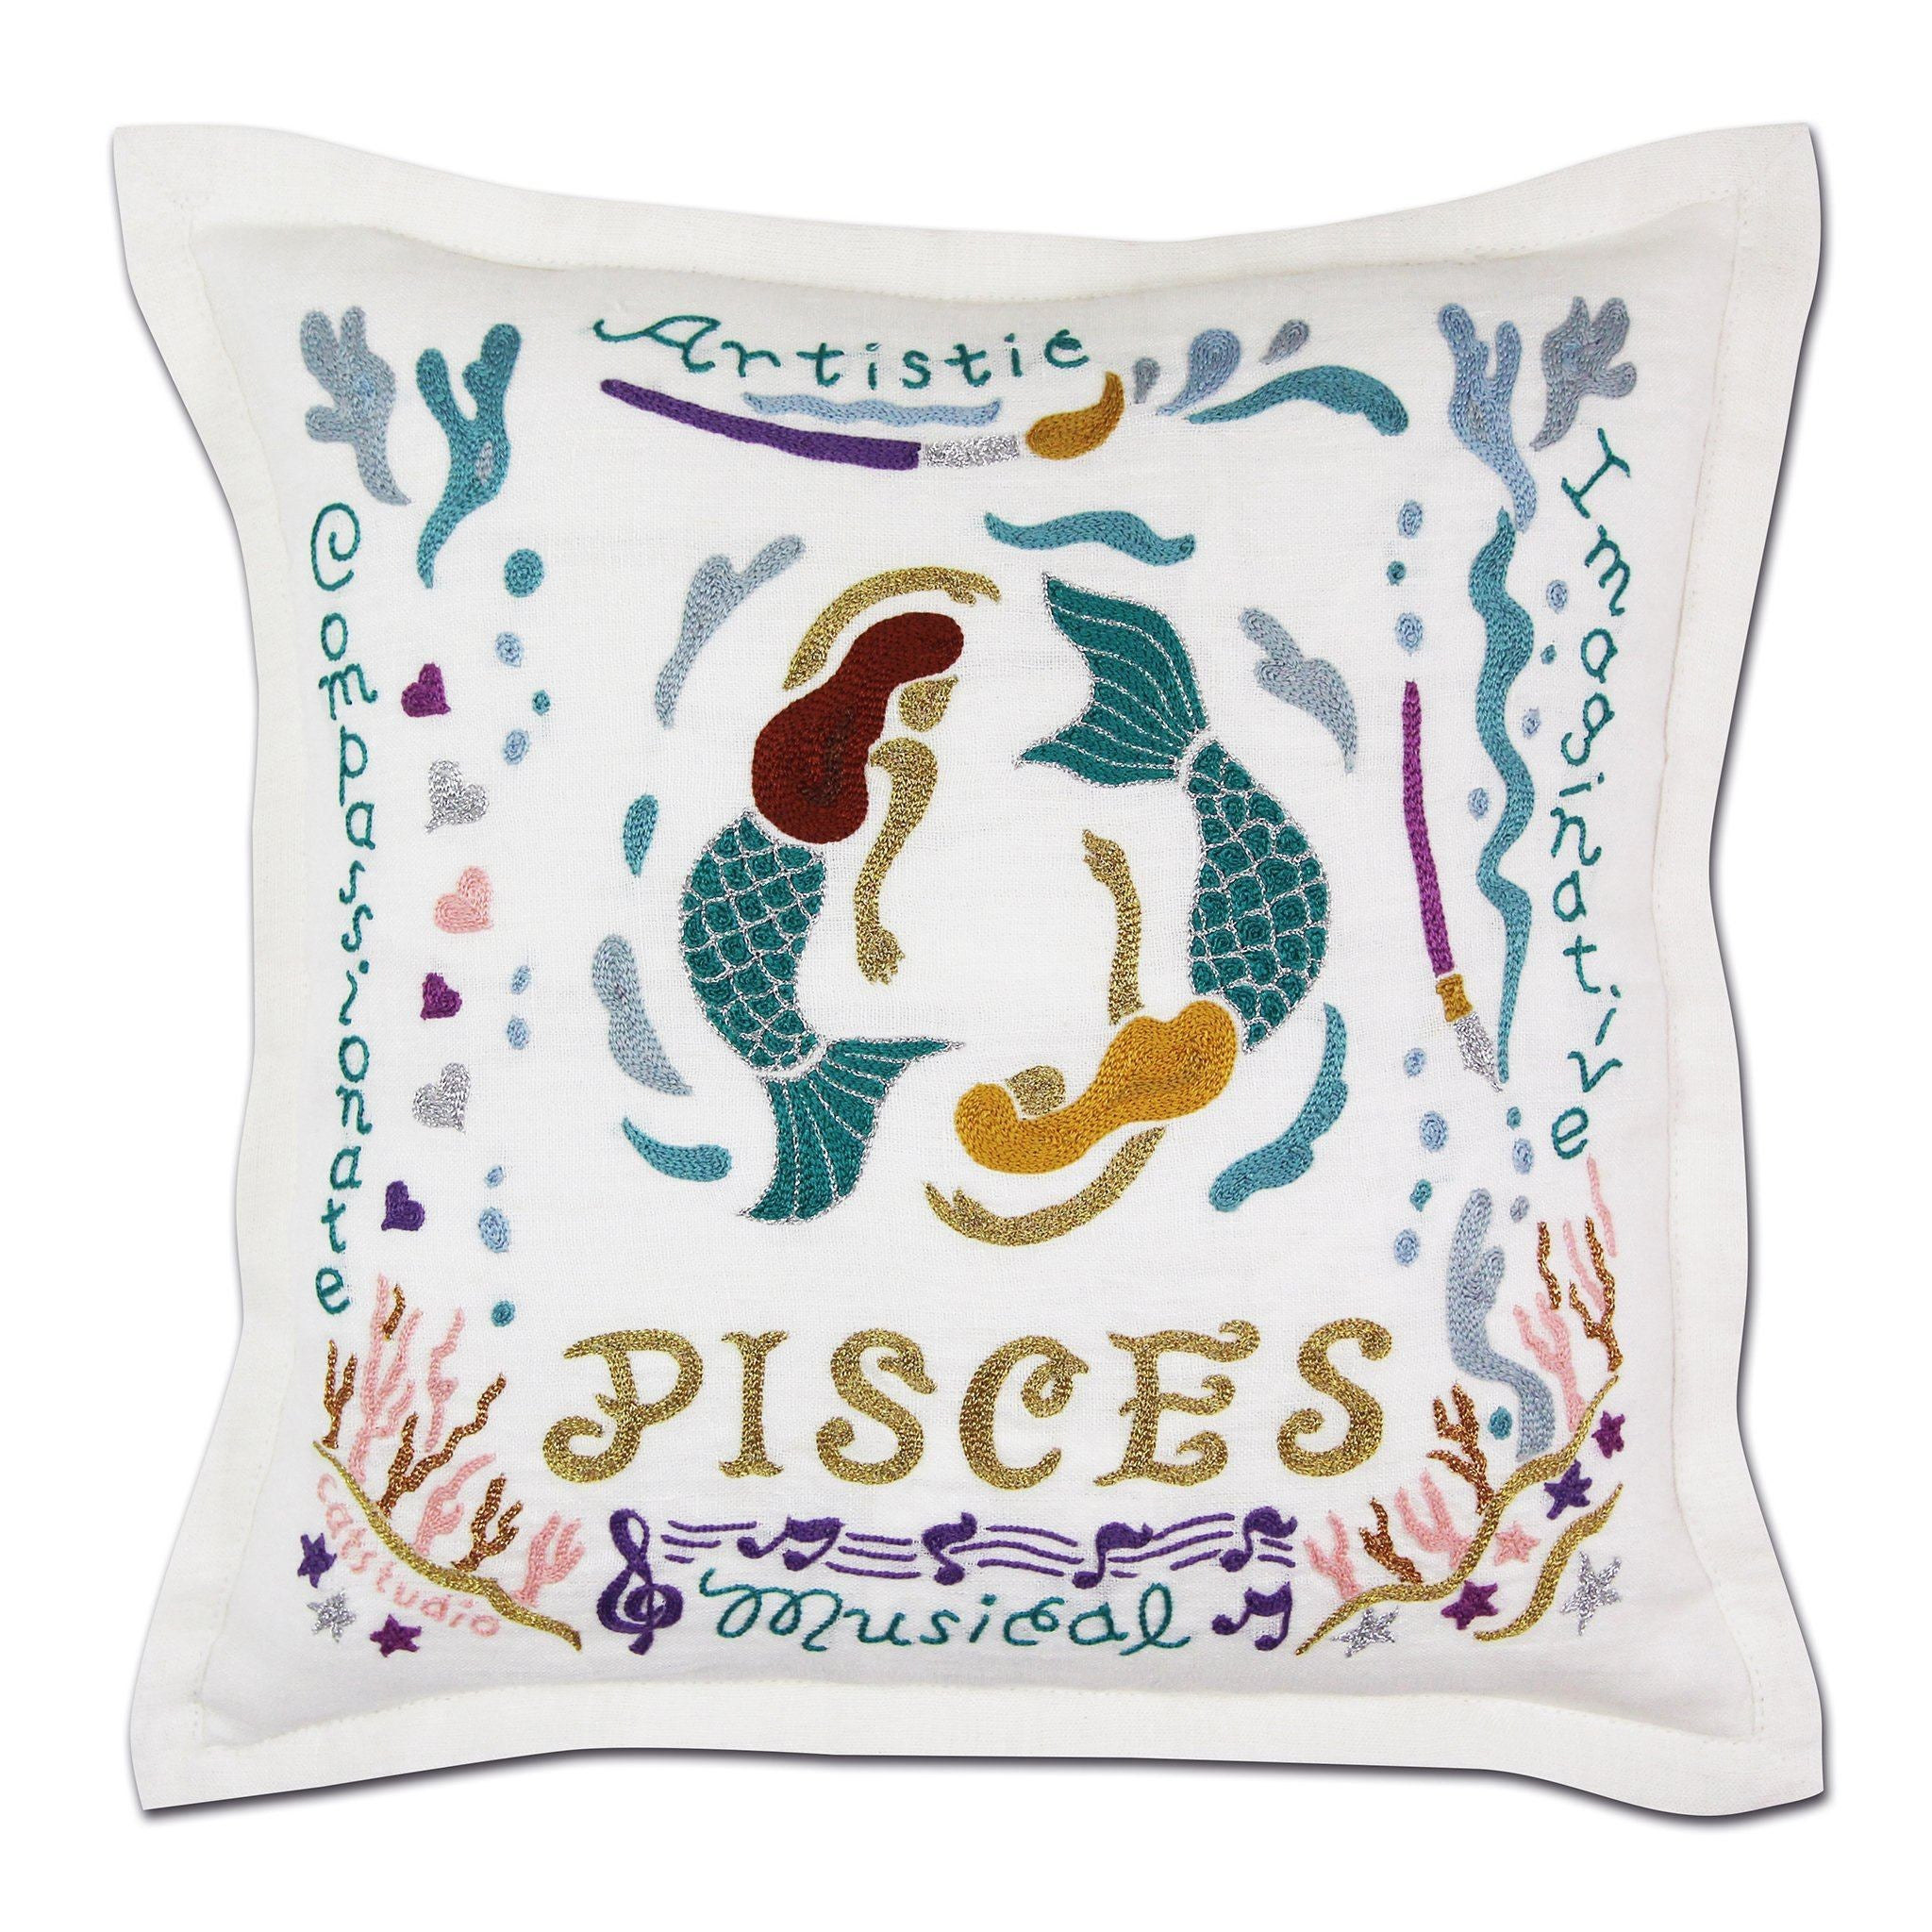 Pisces Astrology Hand-Embroidered Pillow